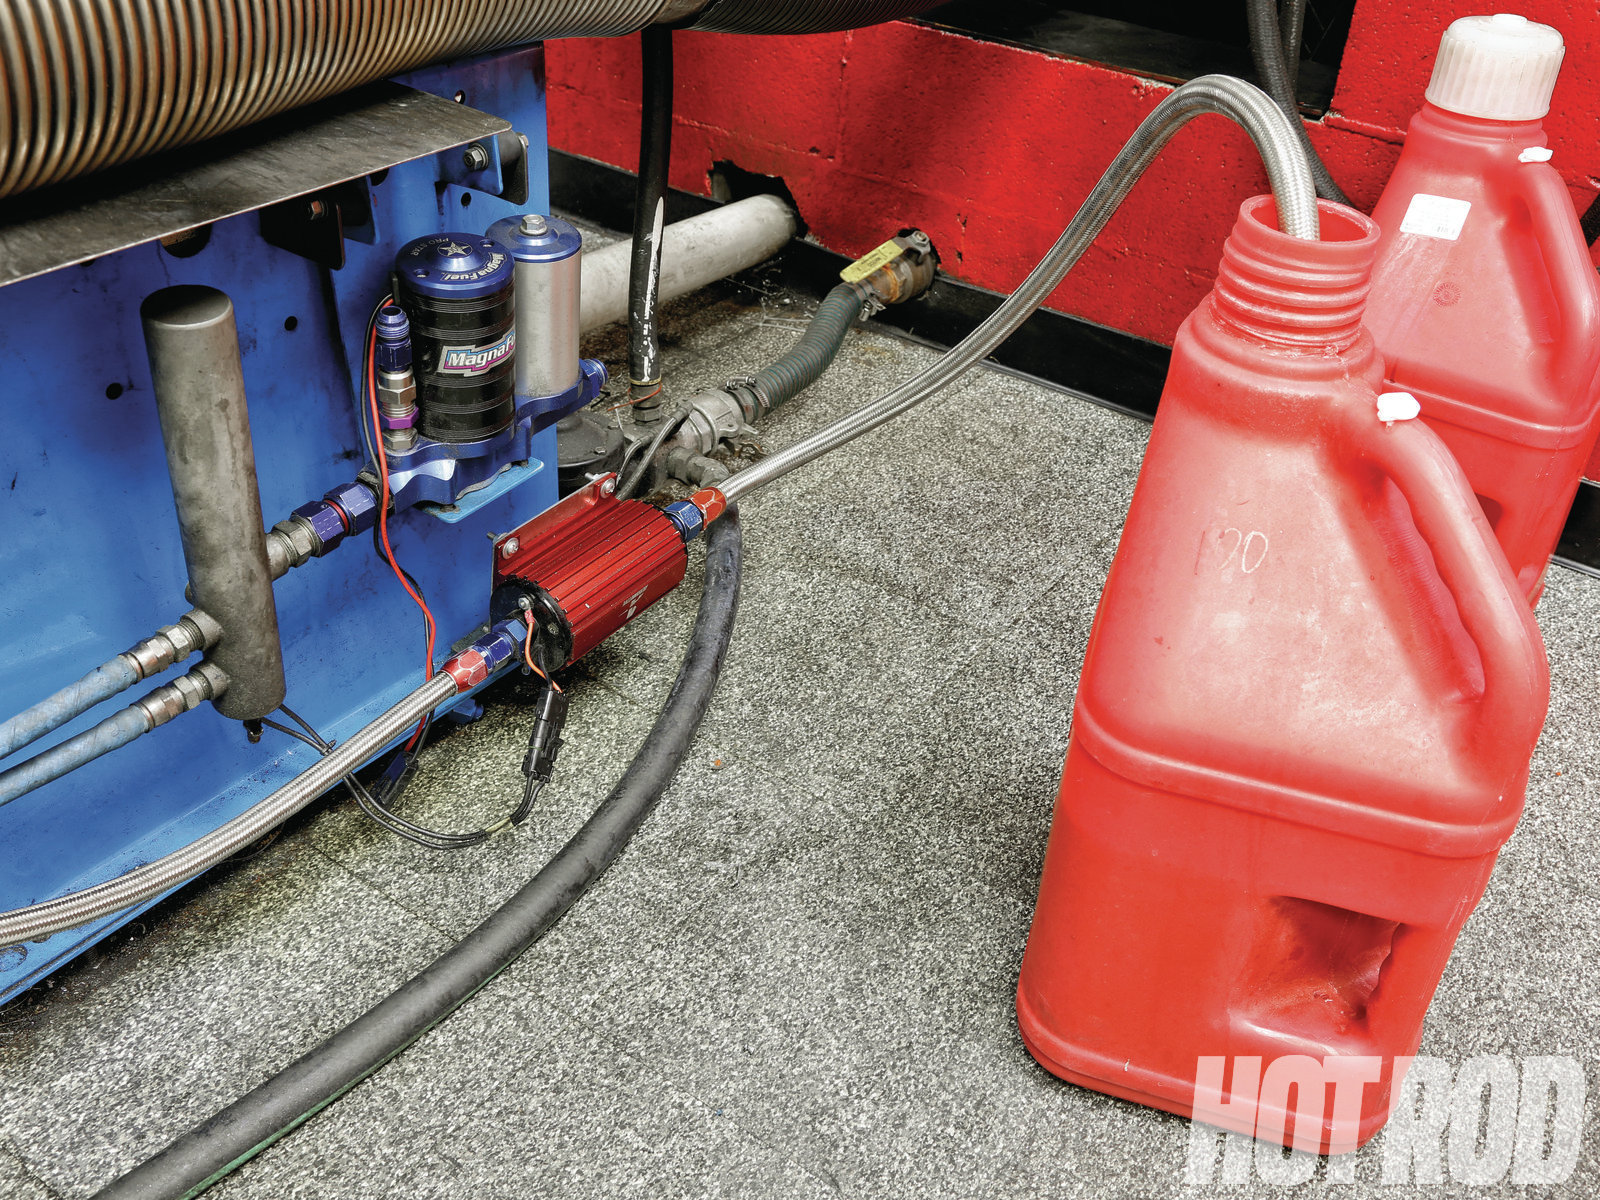 [11] Although every test cell is set up differently, the fuel system in SAM's dyno room is as simple as it gets. Two pumps—one for EFI and another for carbureted setups—are mounted to the dyno frame and draw fuel directly from 5-gallon jugs. From there, two short feed lines run forward from each pump to the top of the motor. Switching from an EFI to carbureted fuel system is as easy as swapping feed lines.